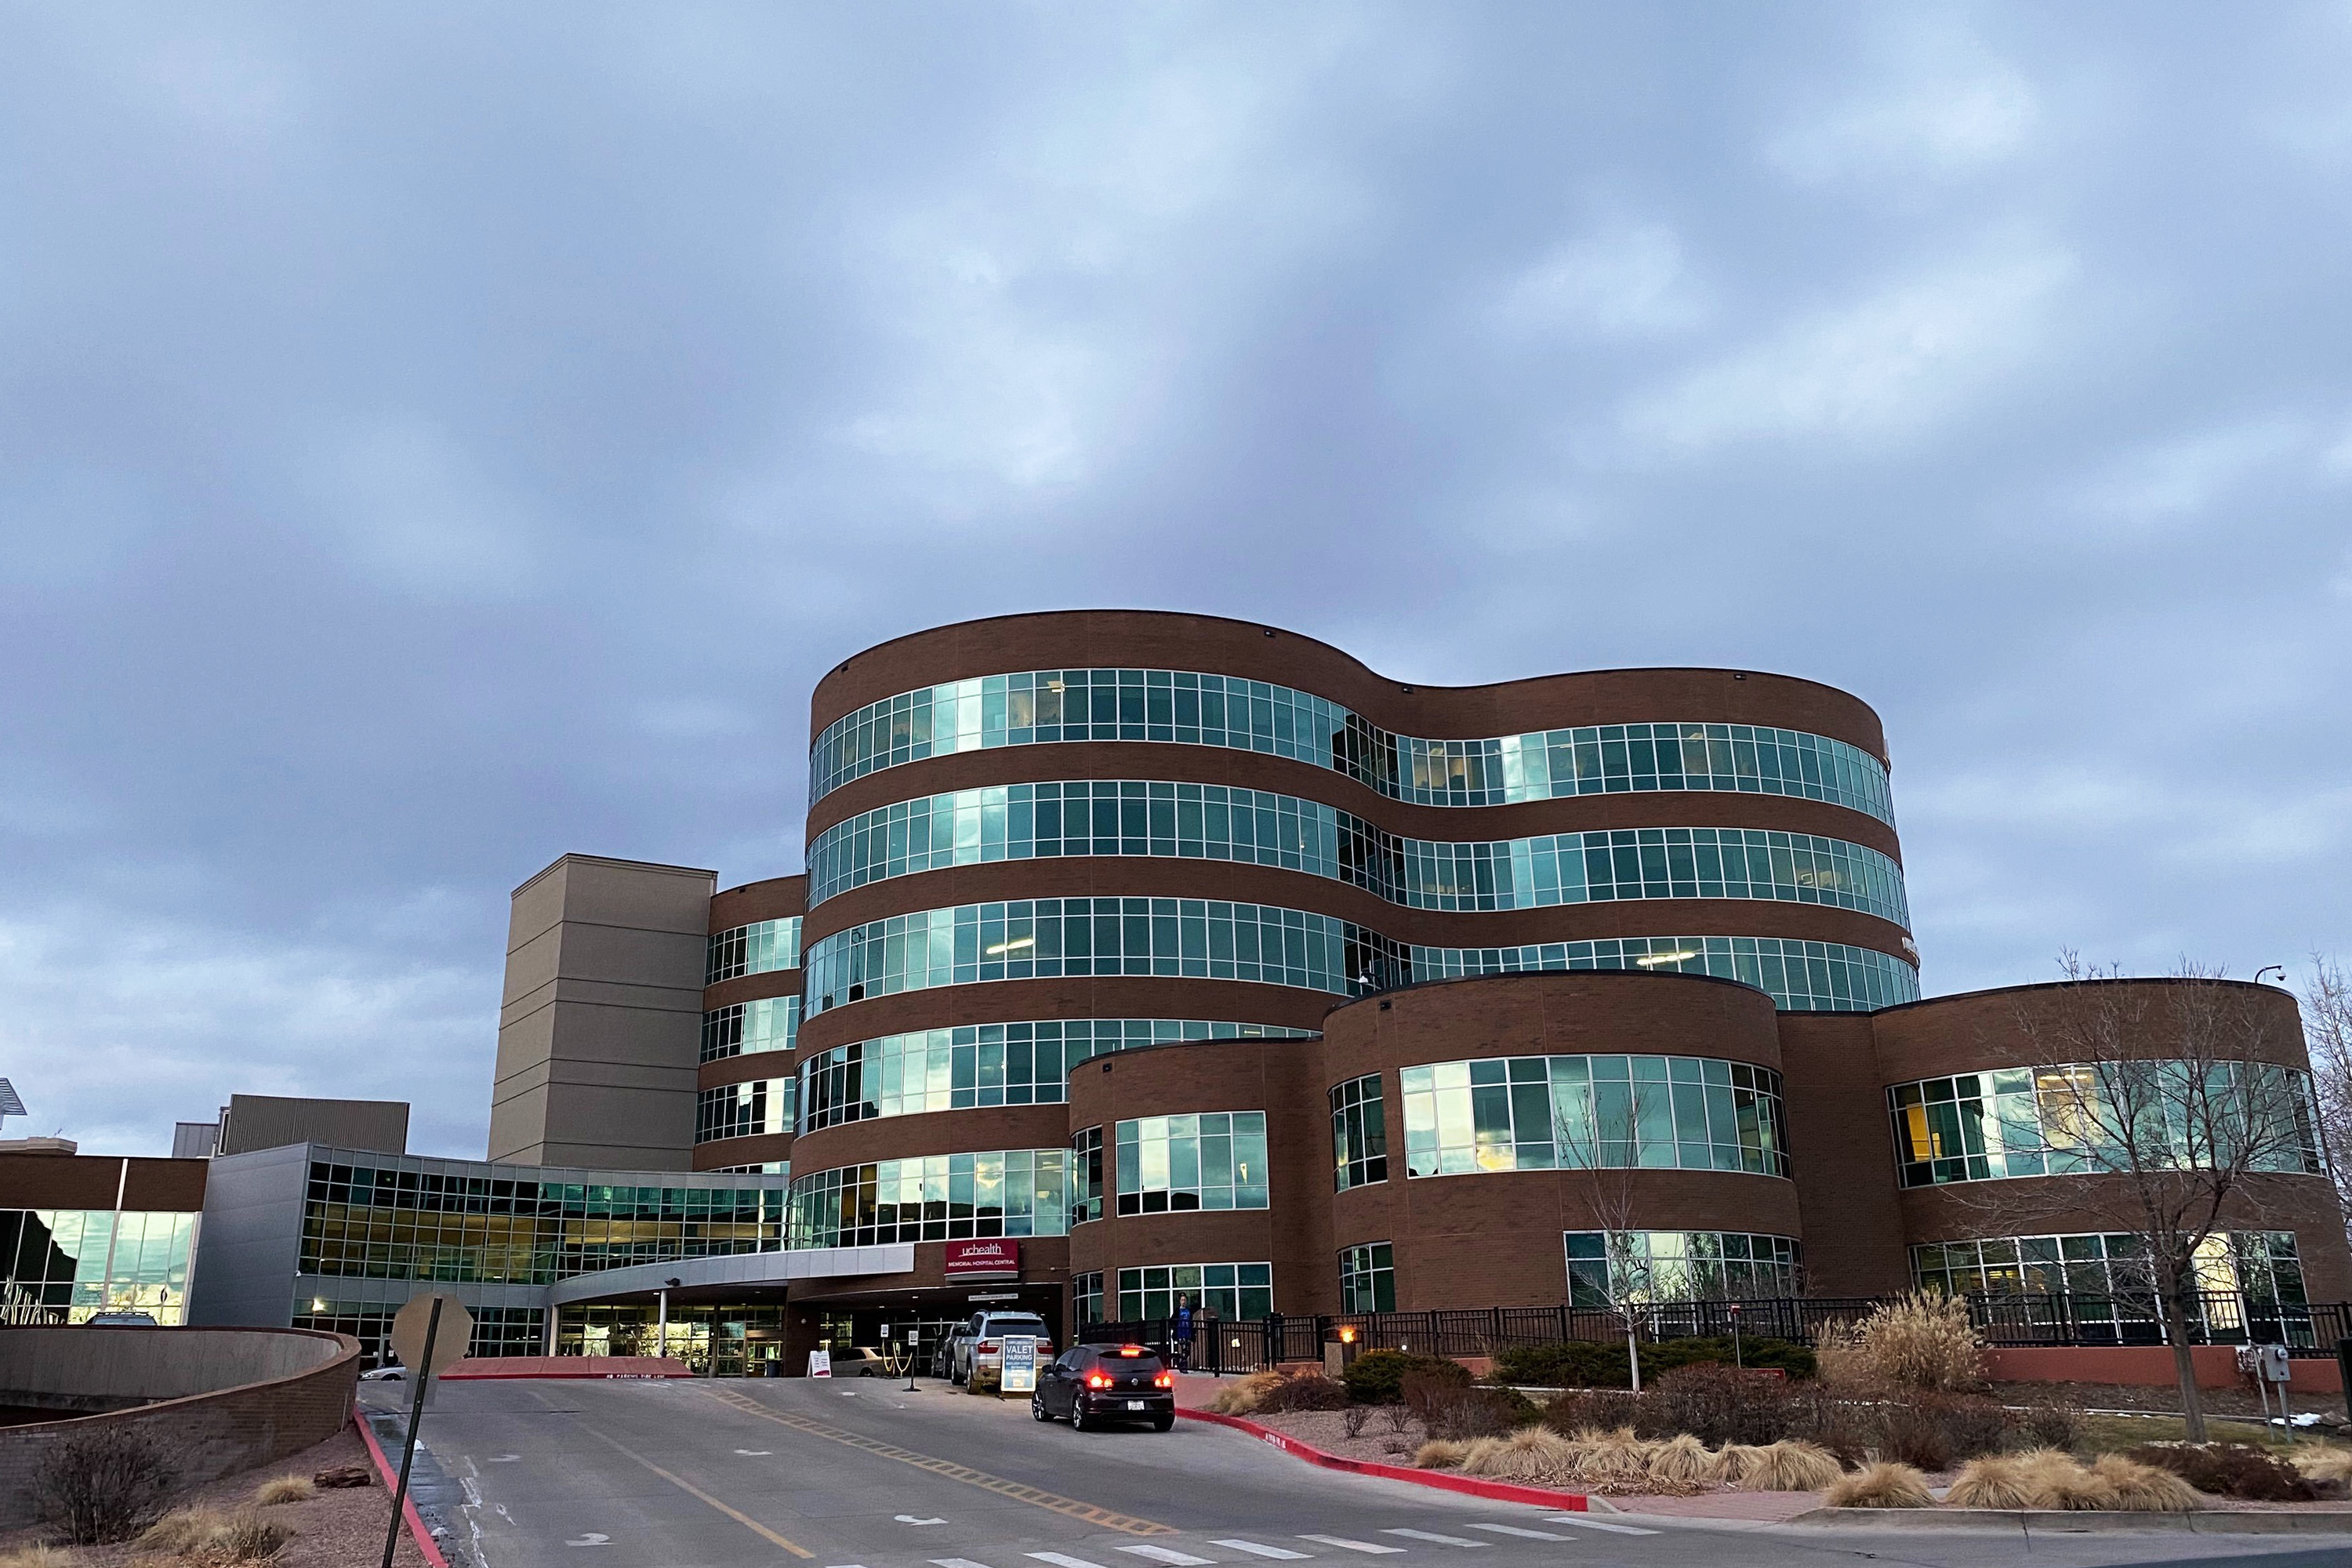 UCHealth Memorial Hospital Central in Colorado Springs shortly after a temporary lockdown on Monday, Nov. 25, 2019.